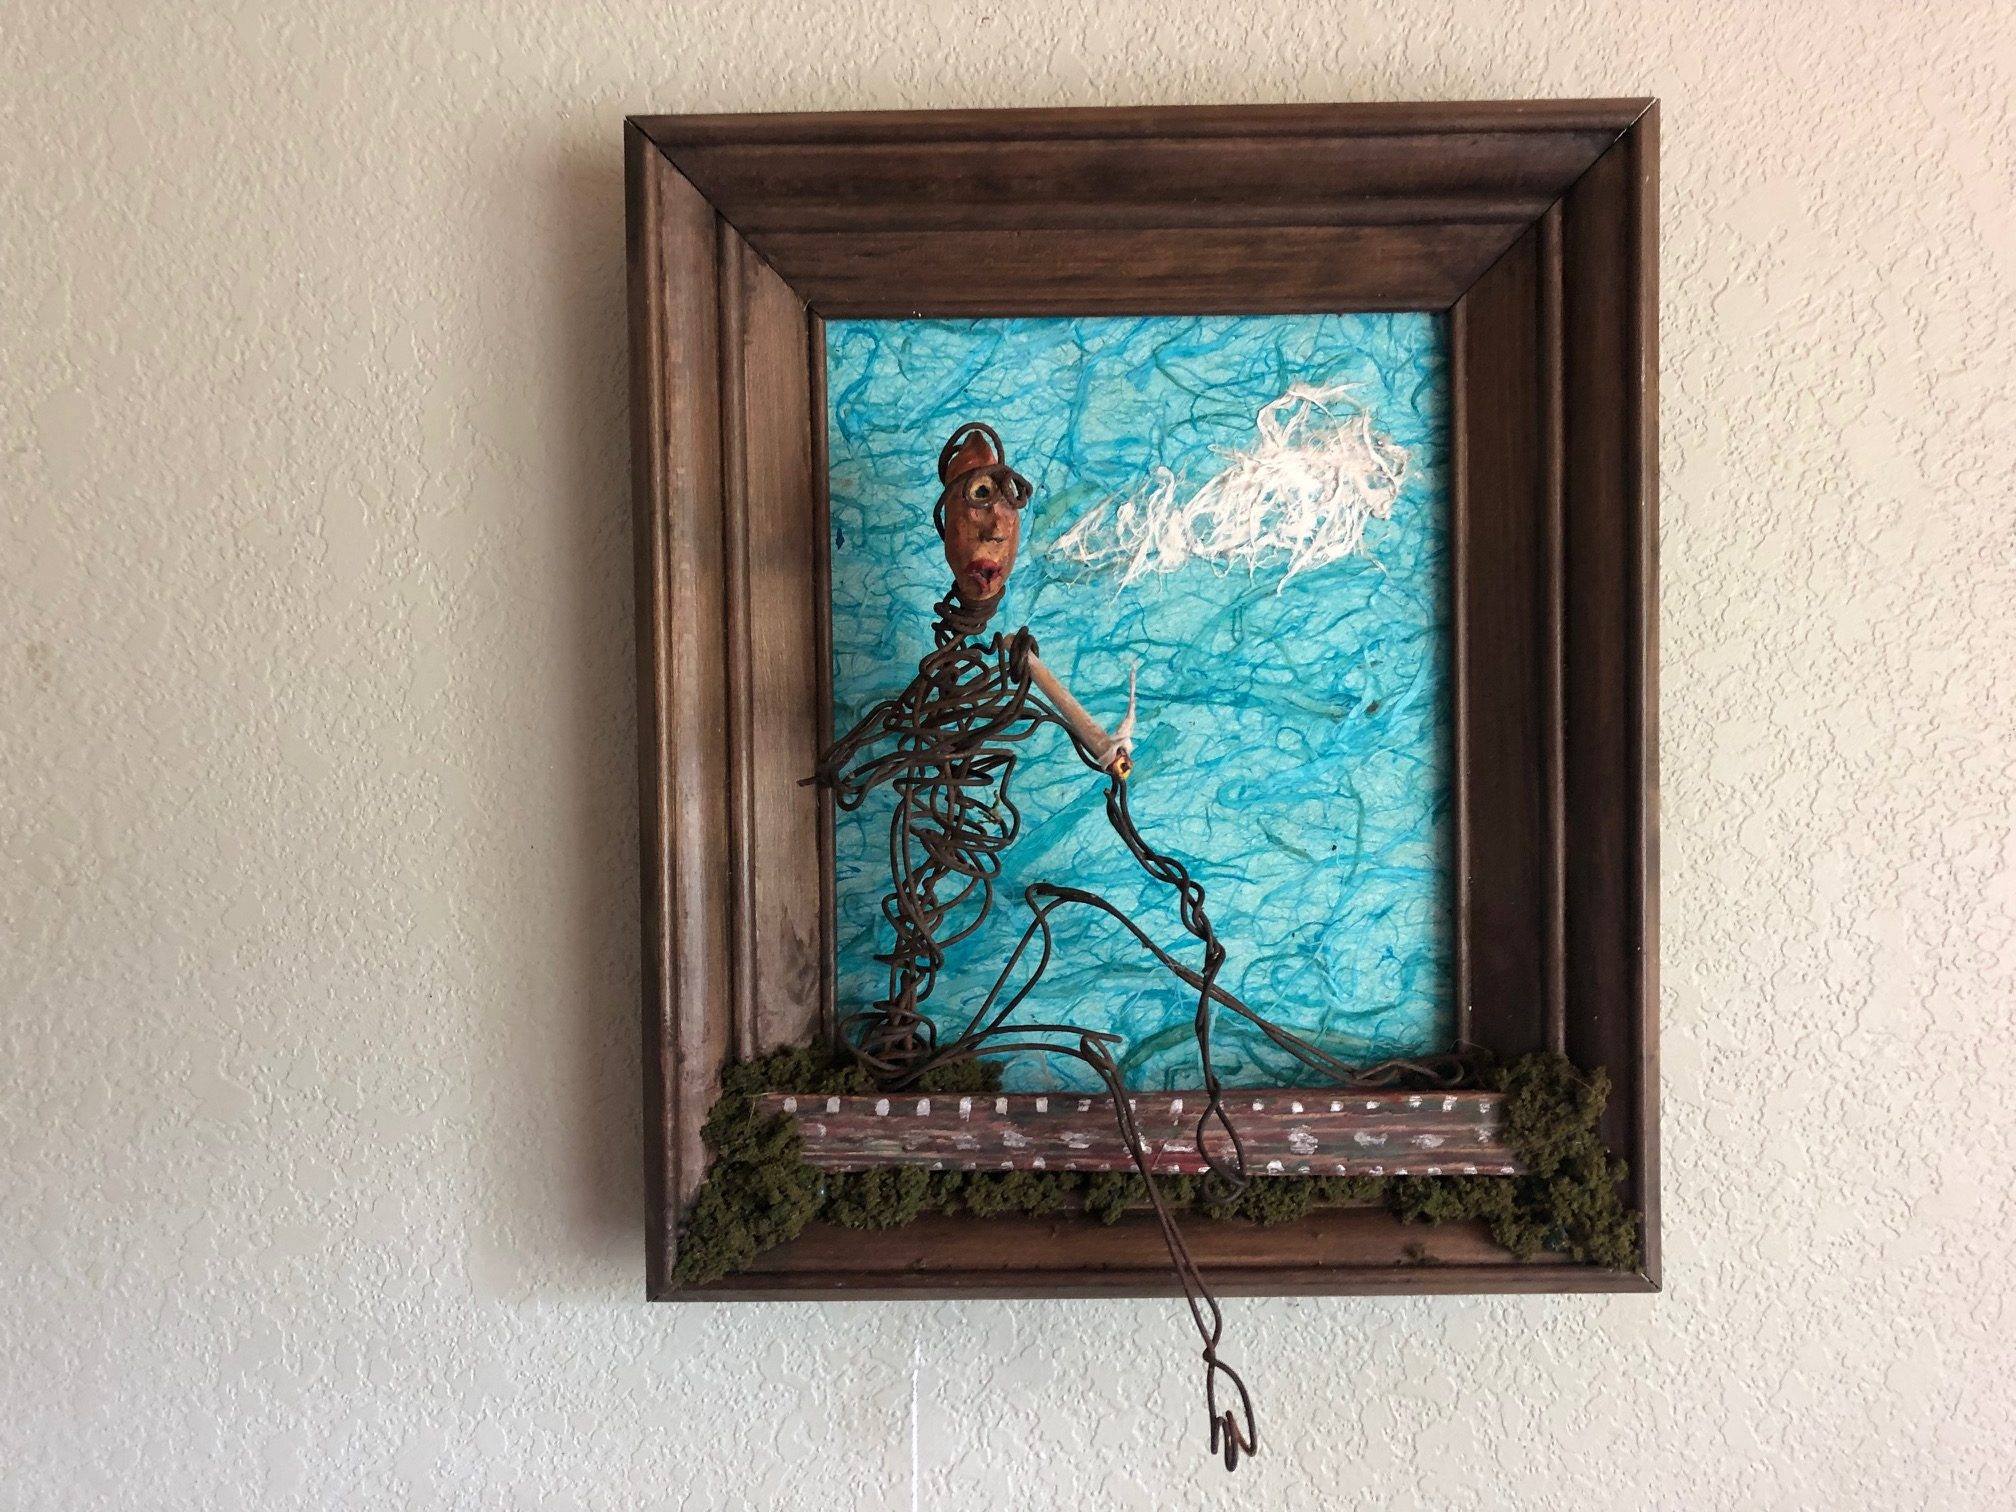 THE SIMPLE JOYS, a Unique, Whimsical 3D Wall Art for the Fishing Soul